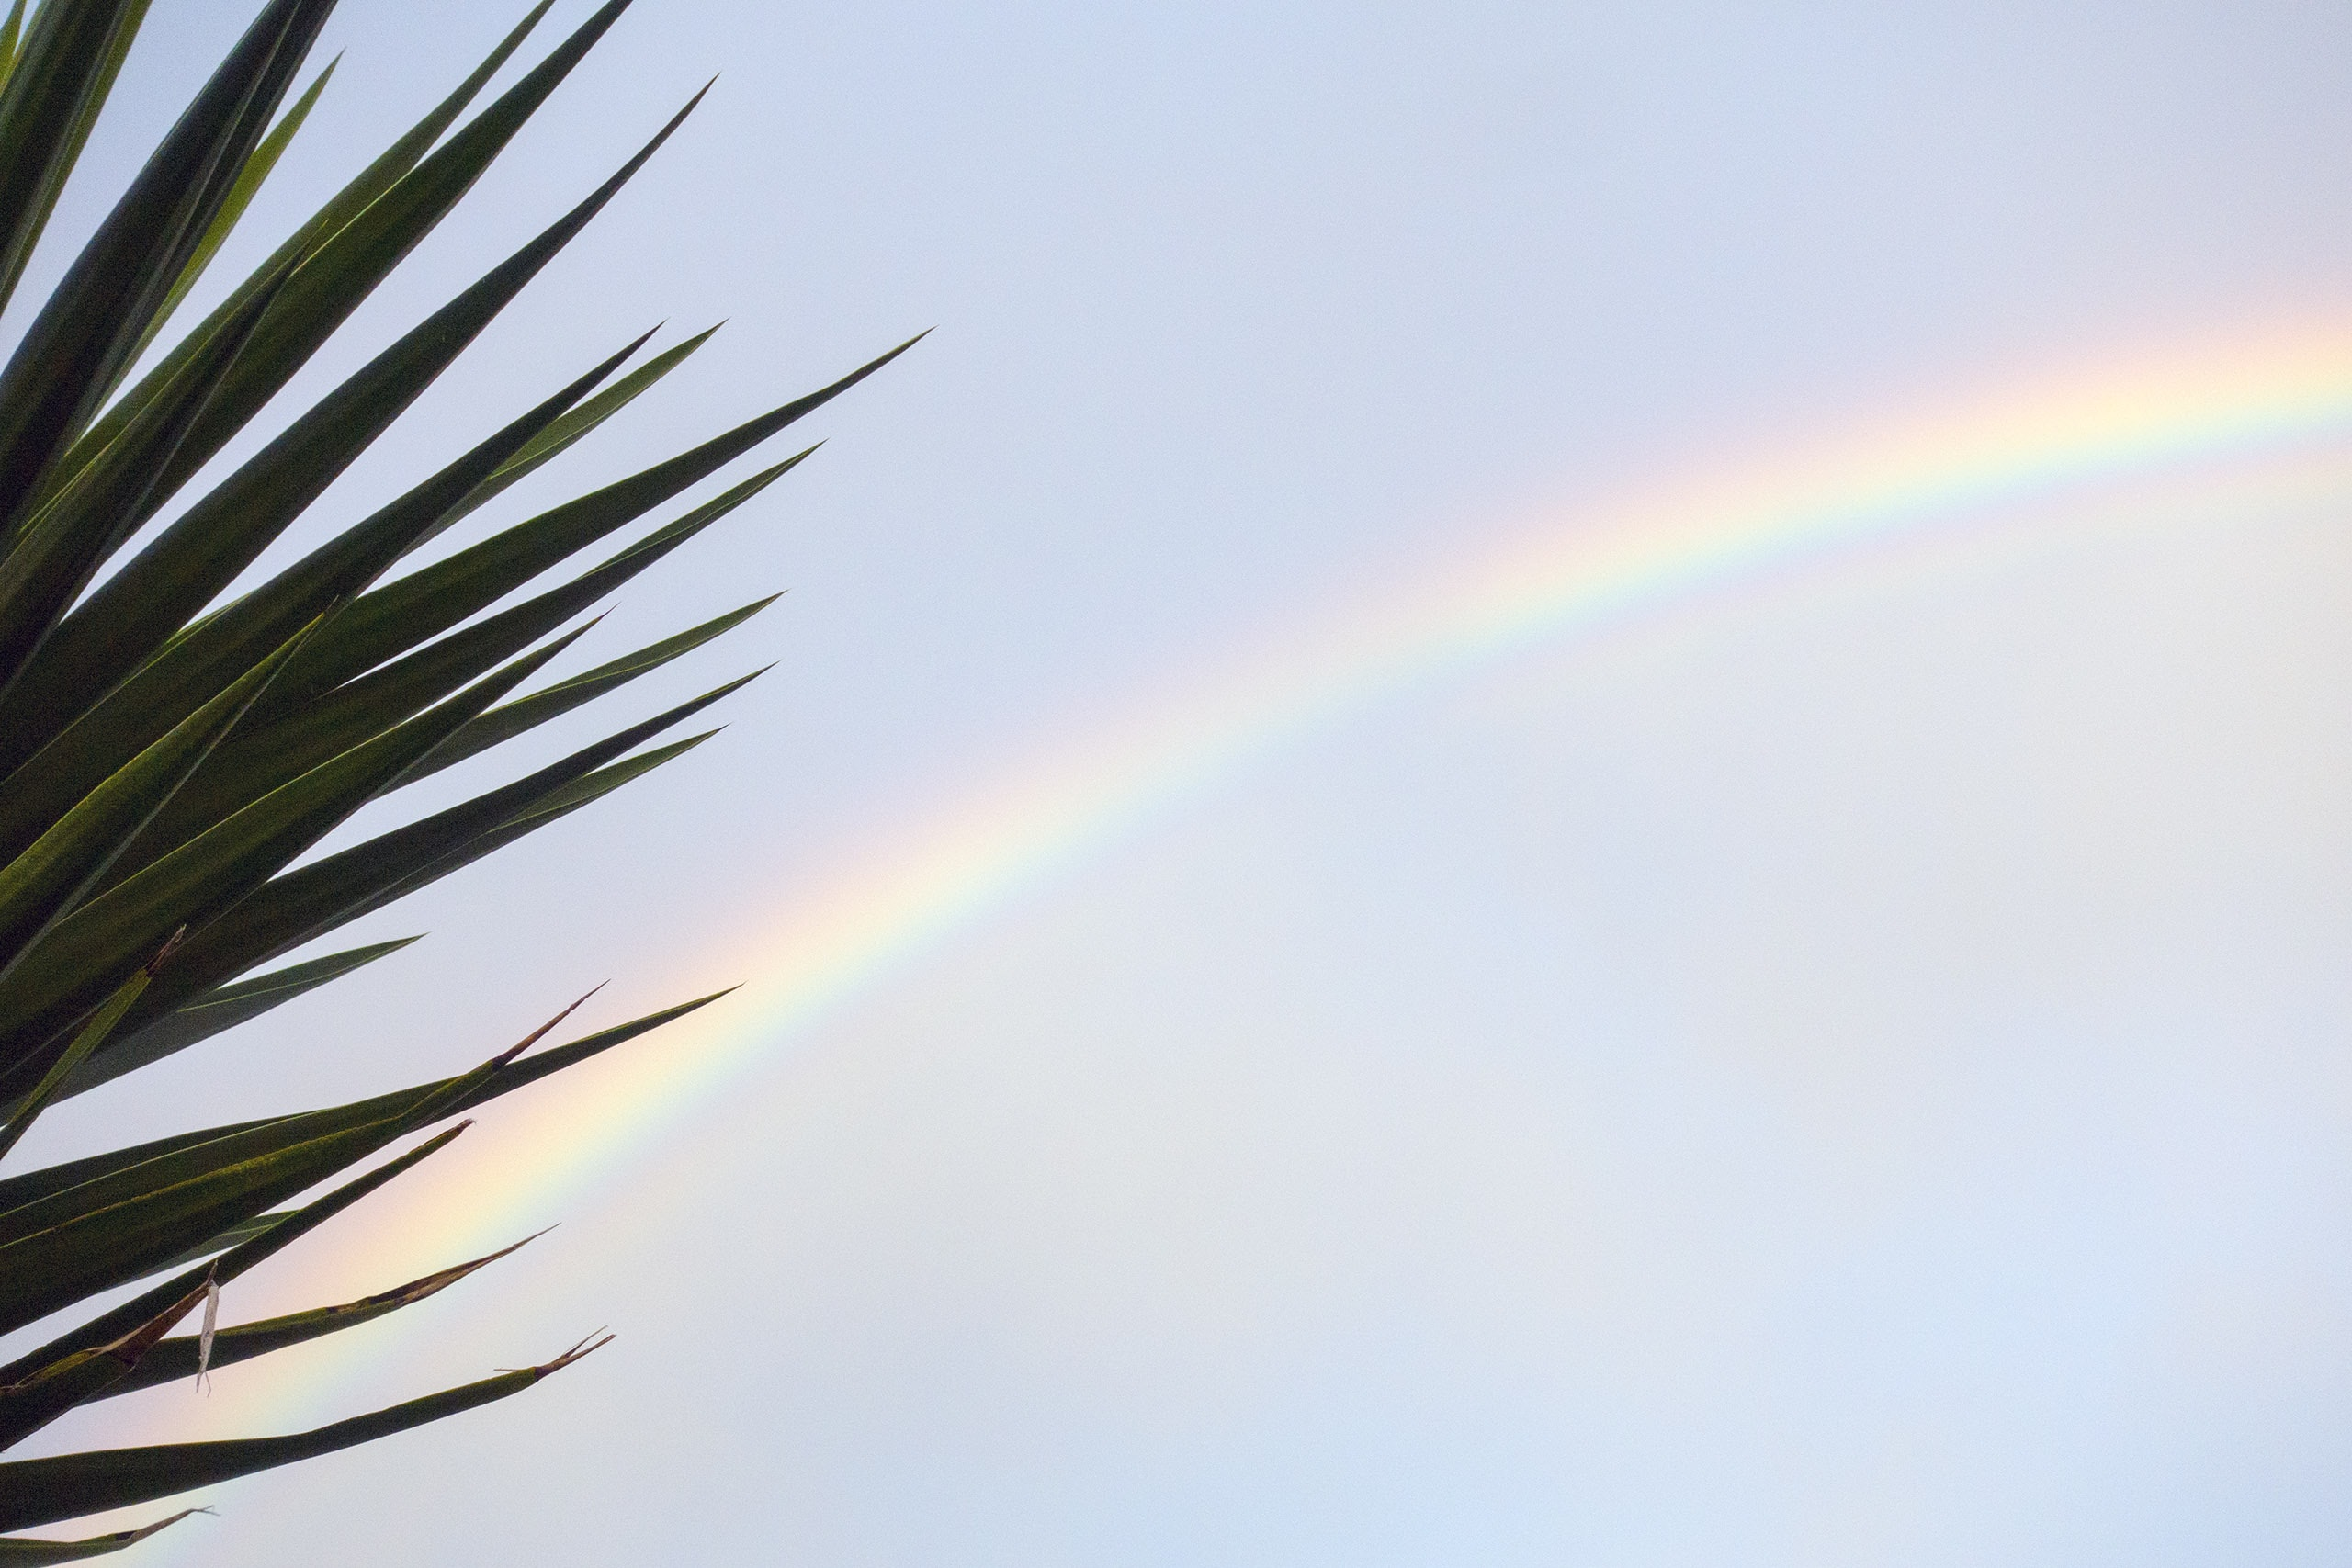 rainbow behind green leaves during daytime